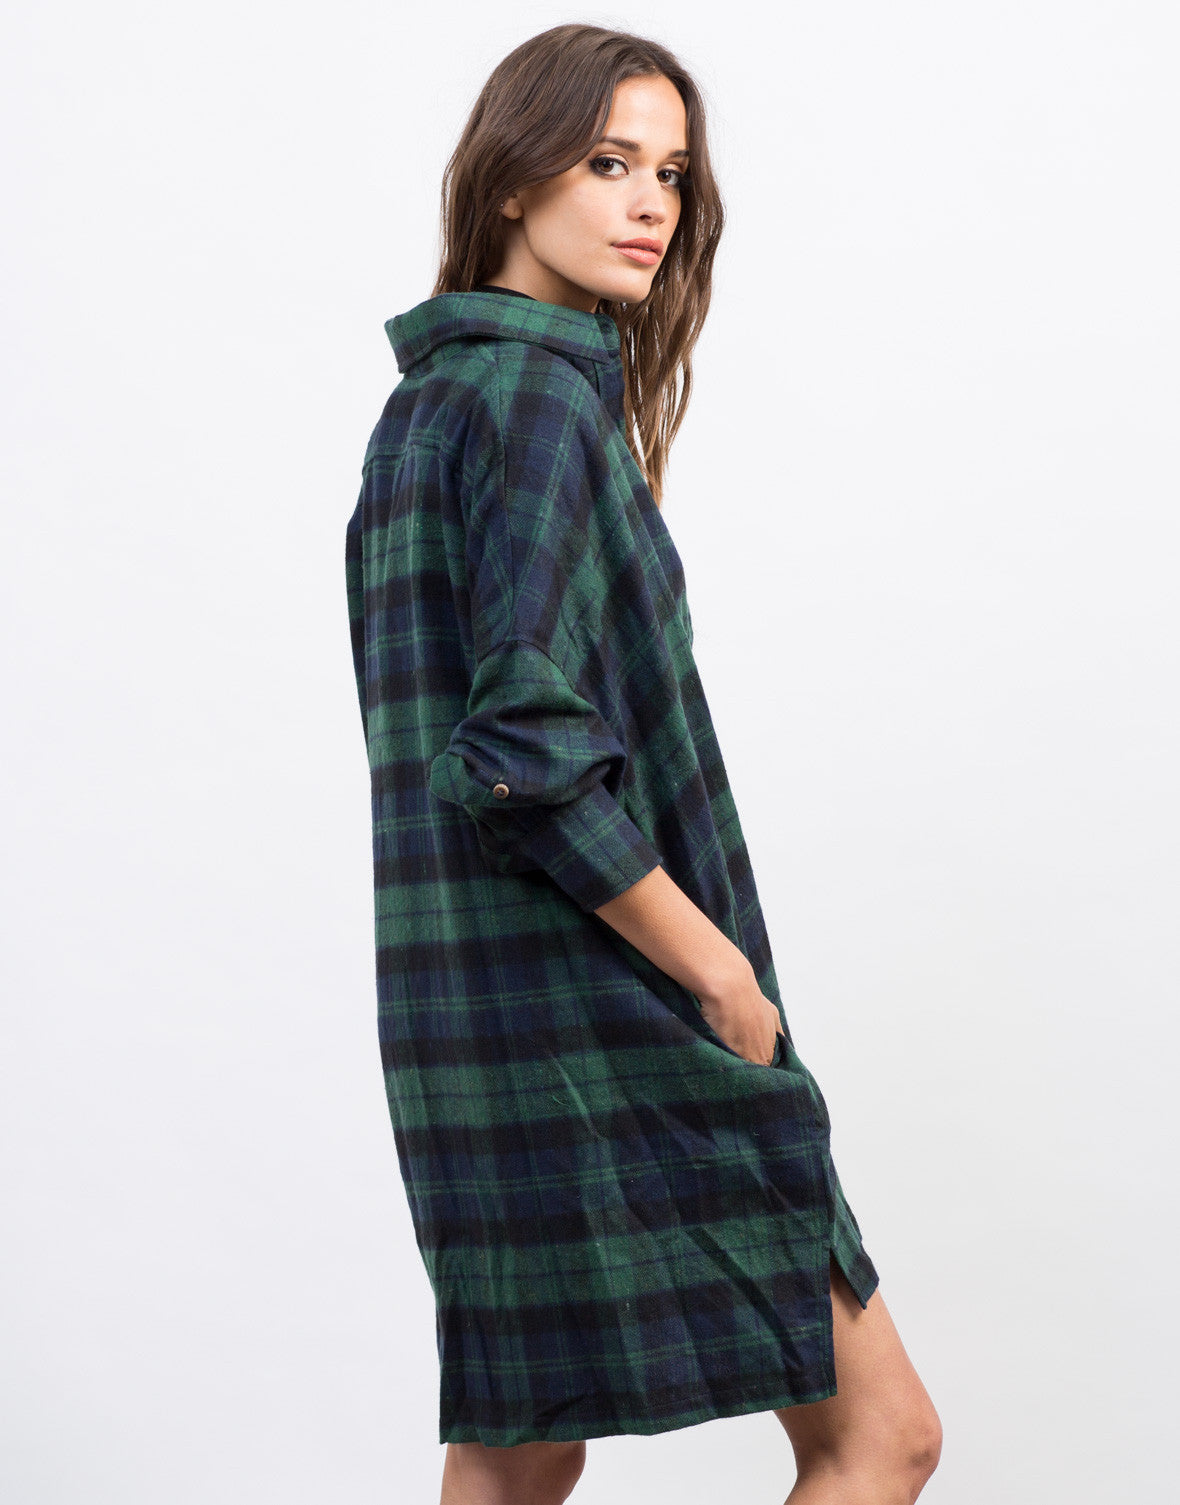 Back View of Plaid Flannel Shirt Dress